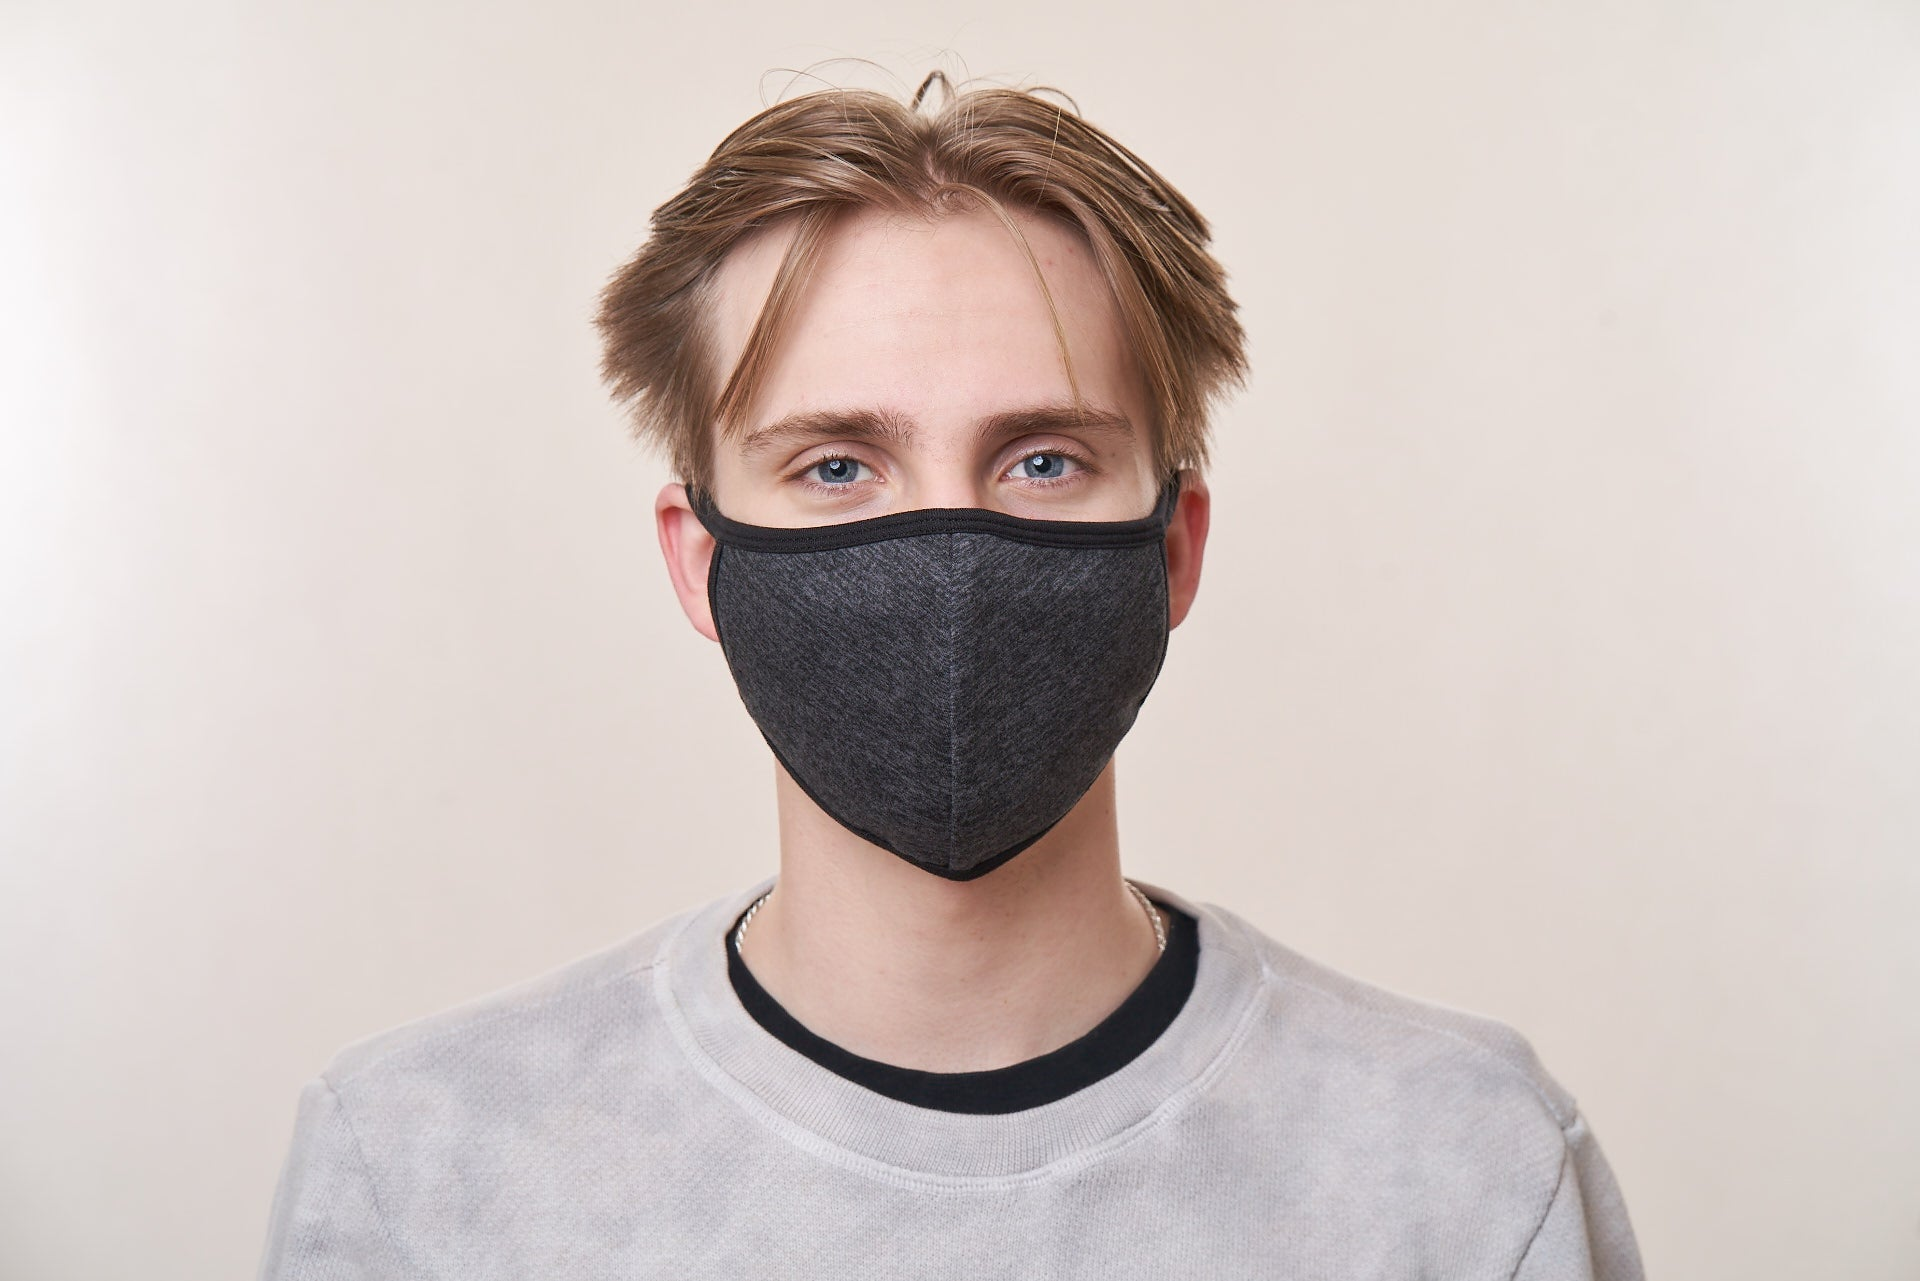 Young man wearing a charcoal heather face mask with black trim.